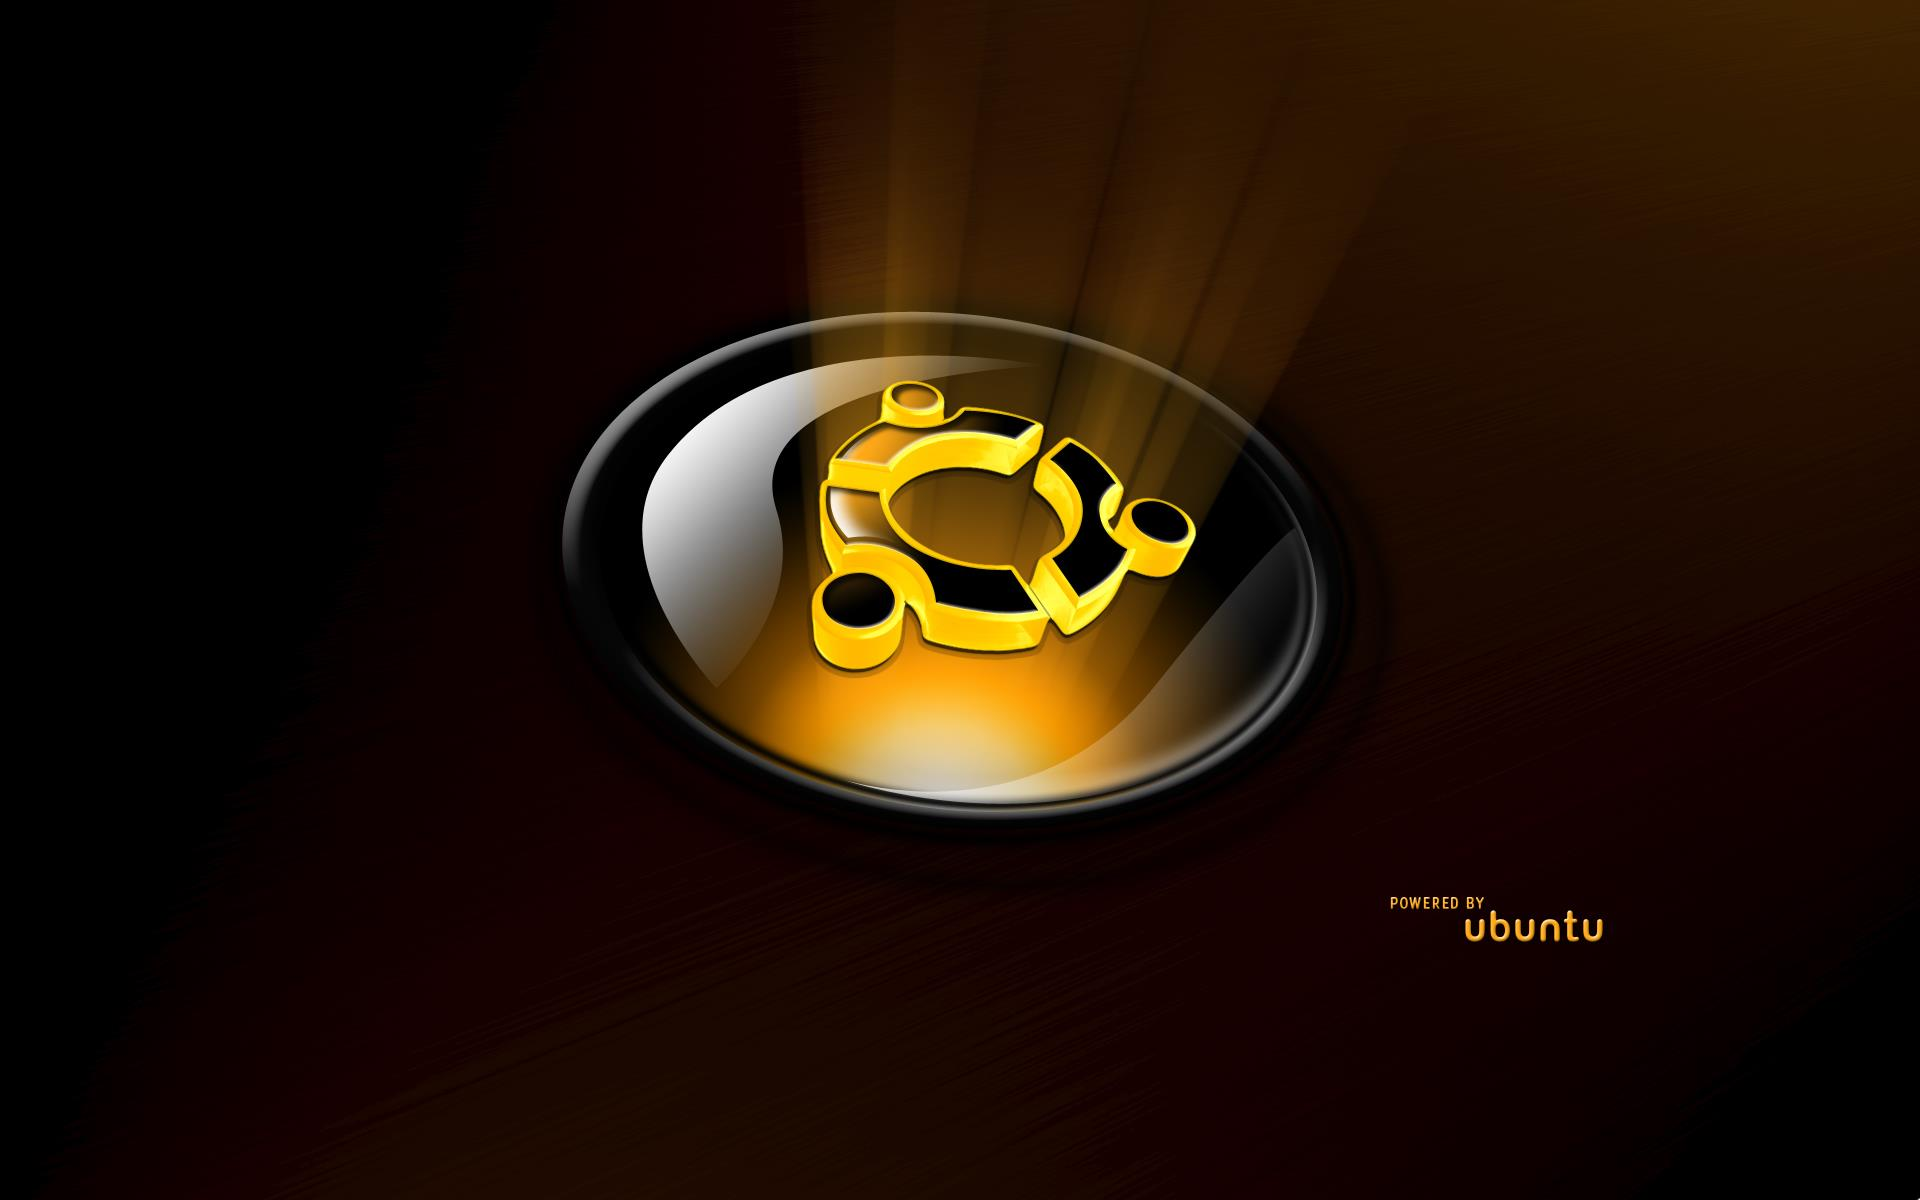 linux-ubuntu-wallpaper-OS-free-hi-tech-Open_1